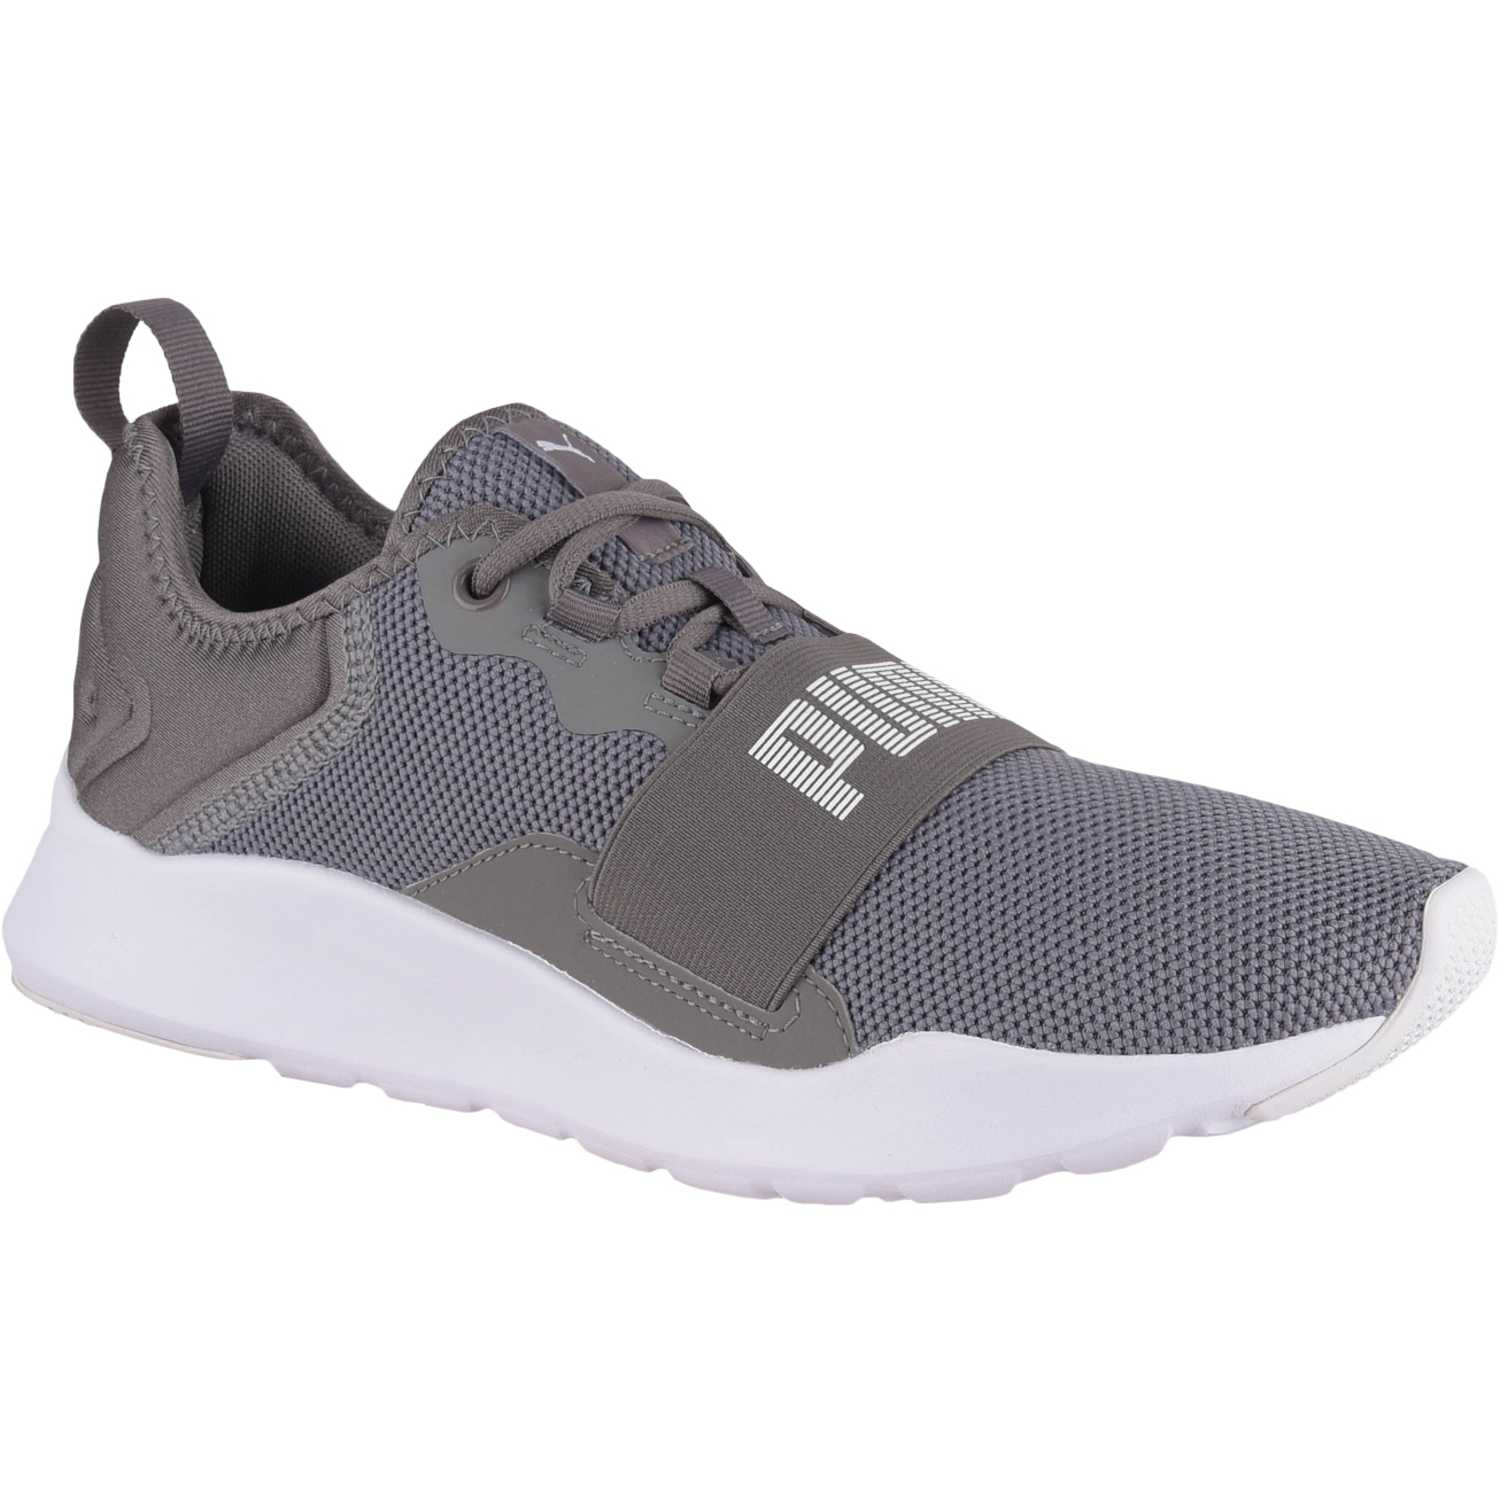 Puma puma wired pro Gris / blanco Walking | platanitos.com